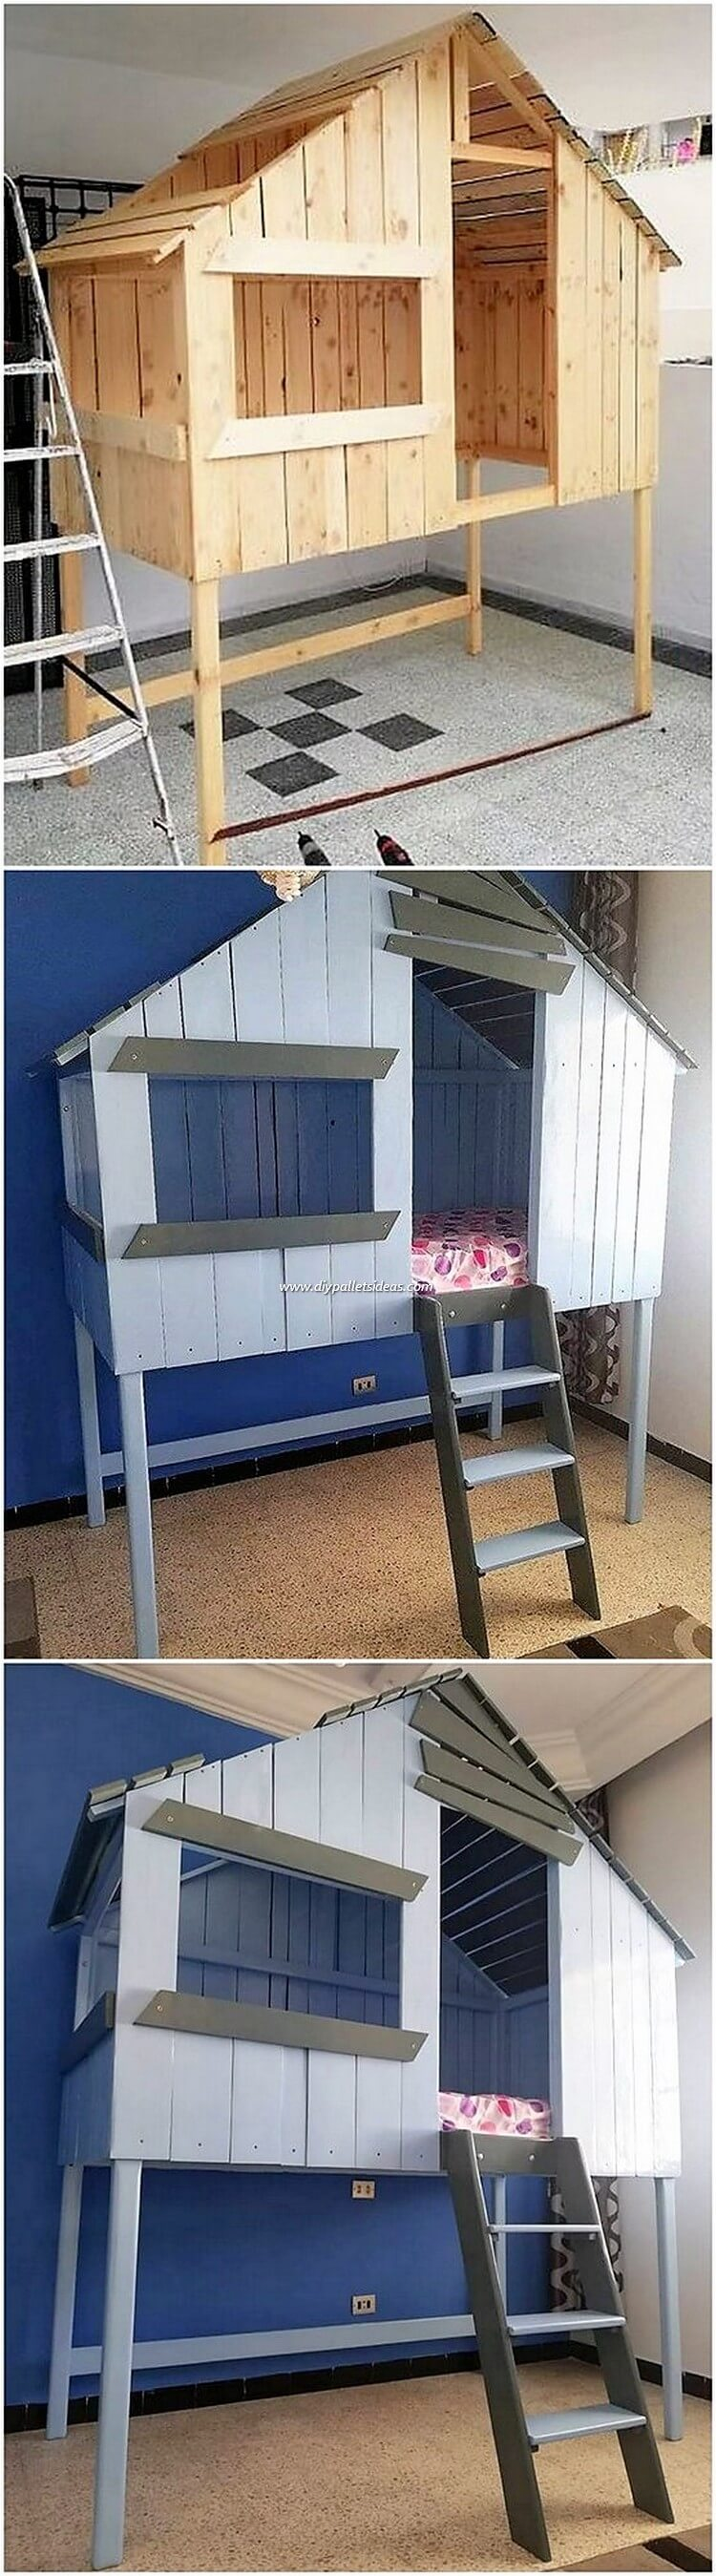 DIY Pallet Bunk Bed